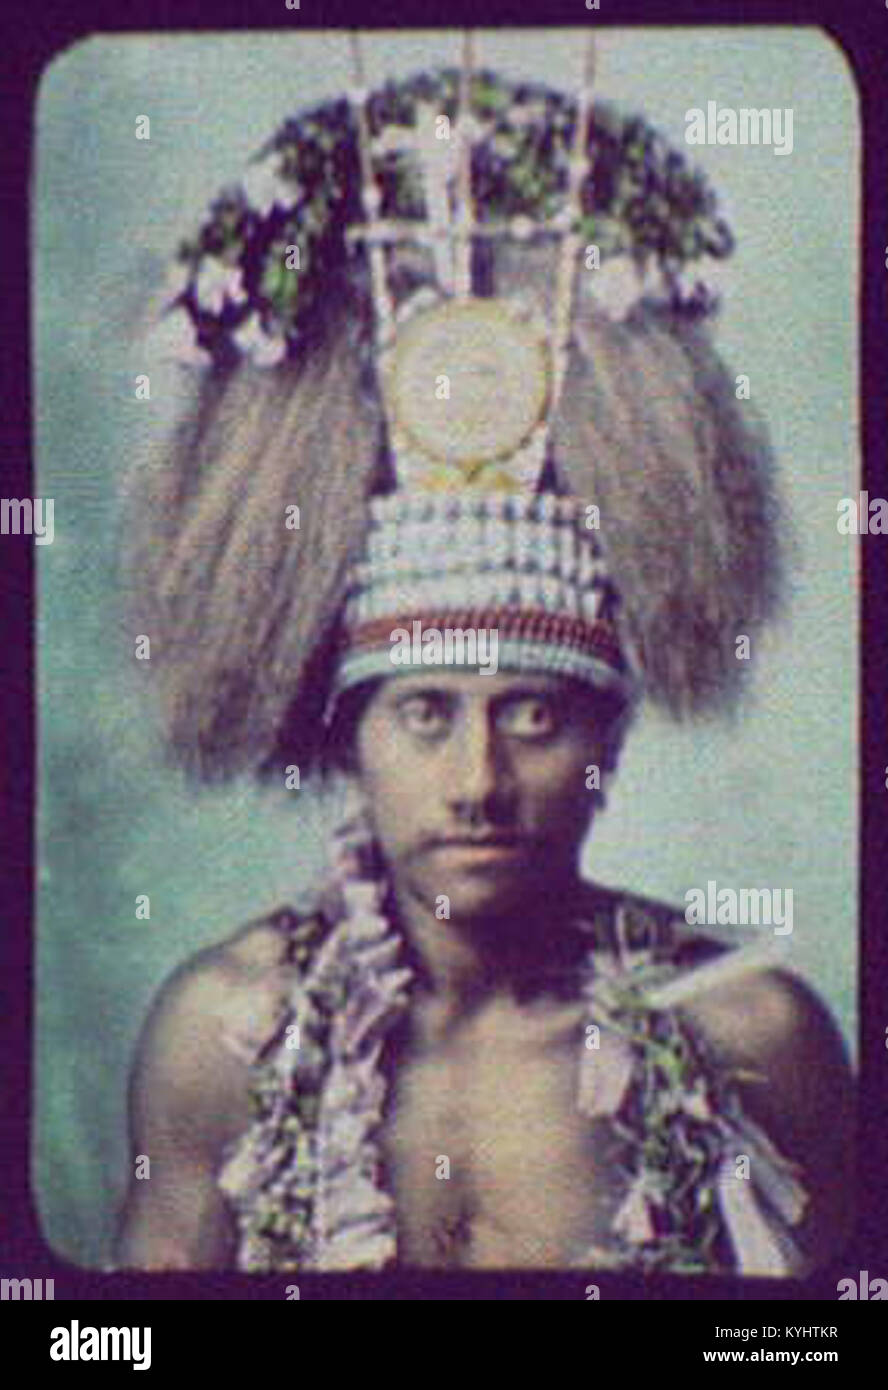 Samoan Chief - head and shoulders, wearing ceremonial headdress LCCN2004707892 - Stock Image